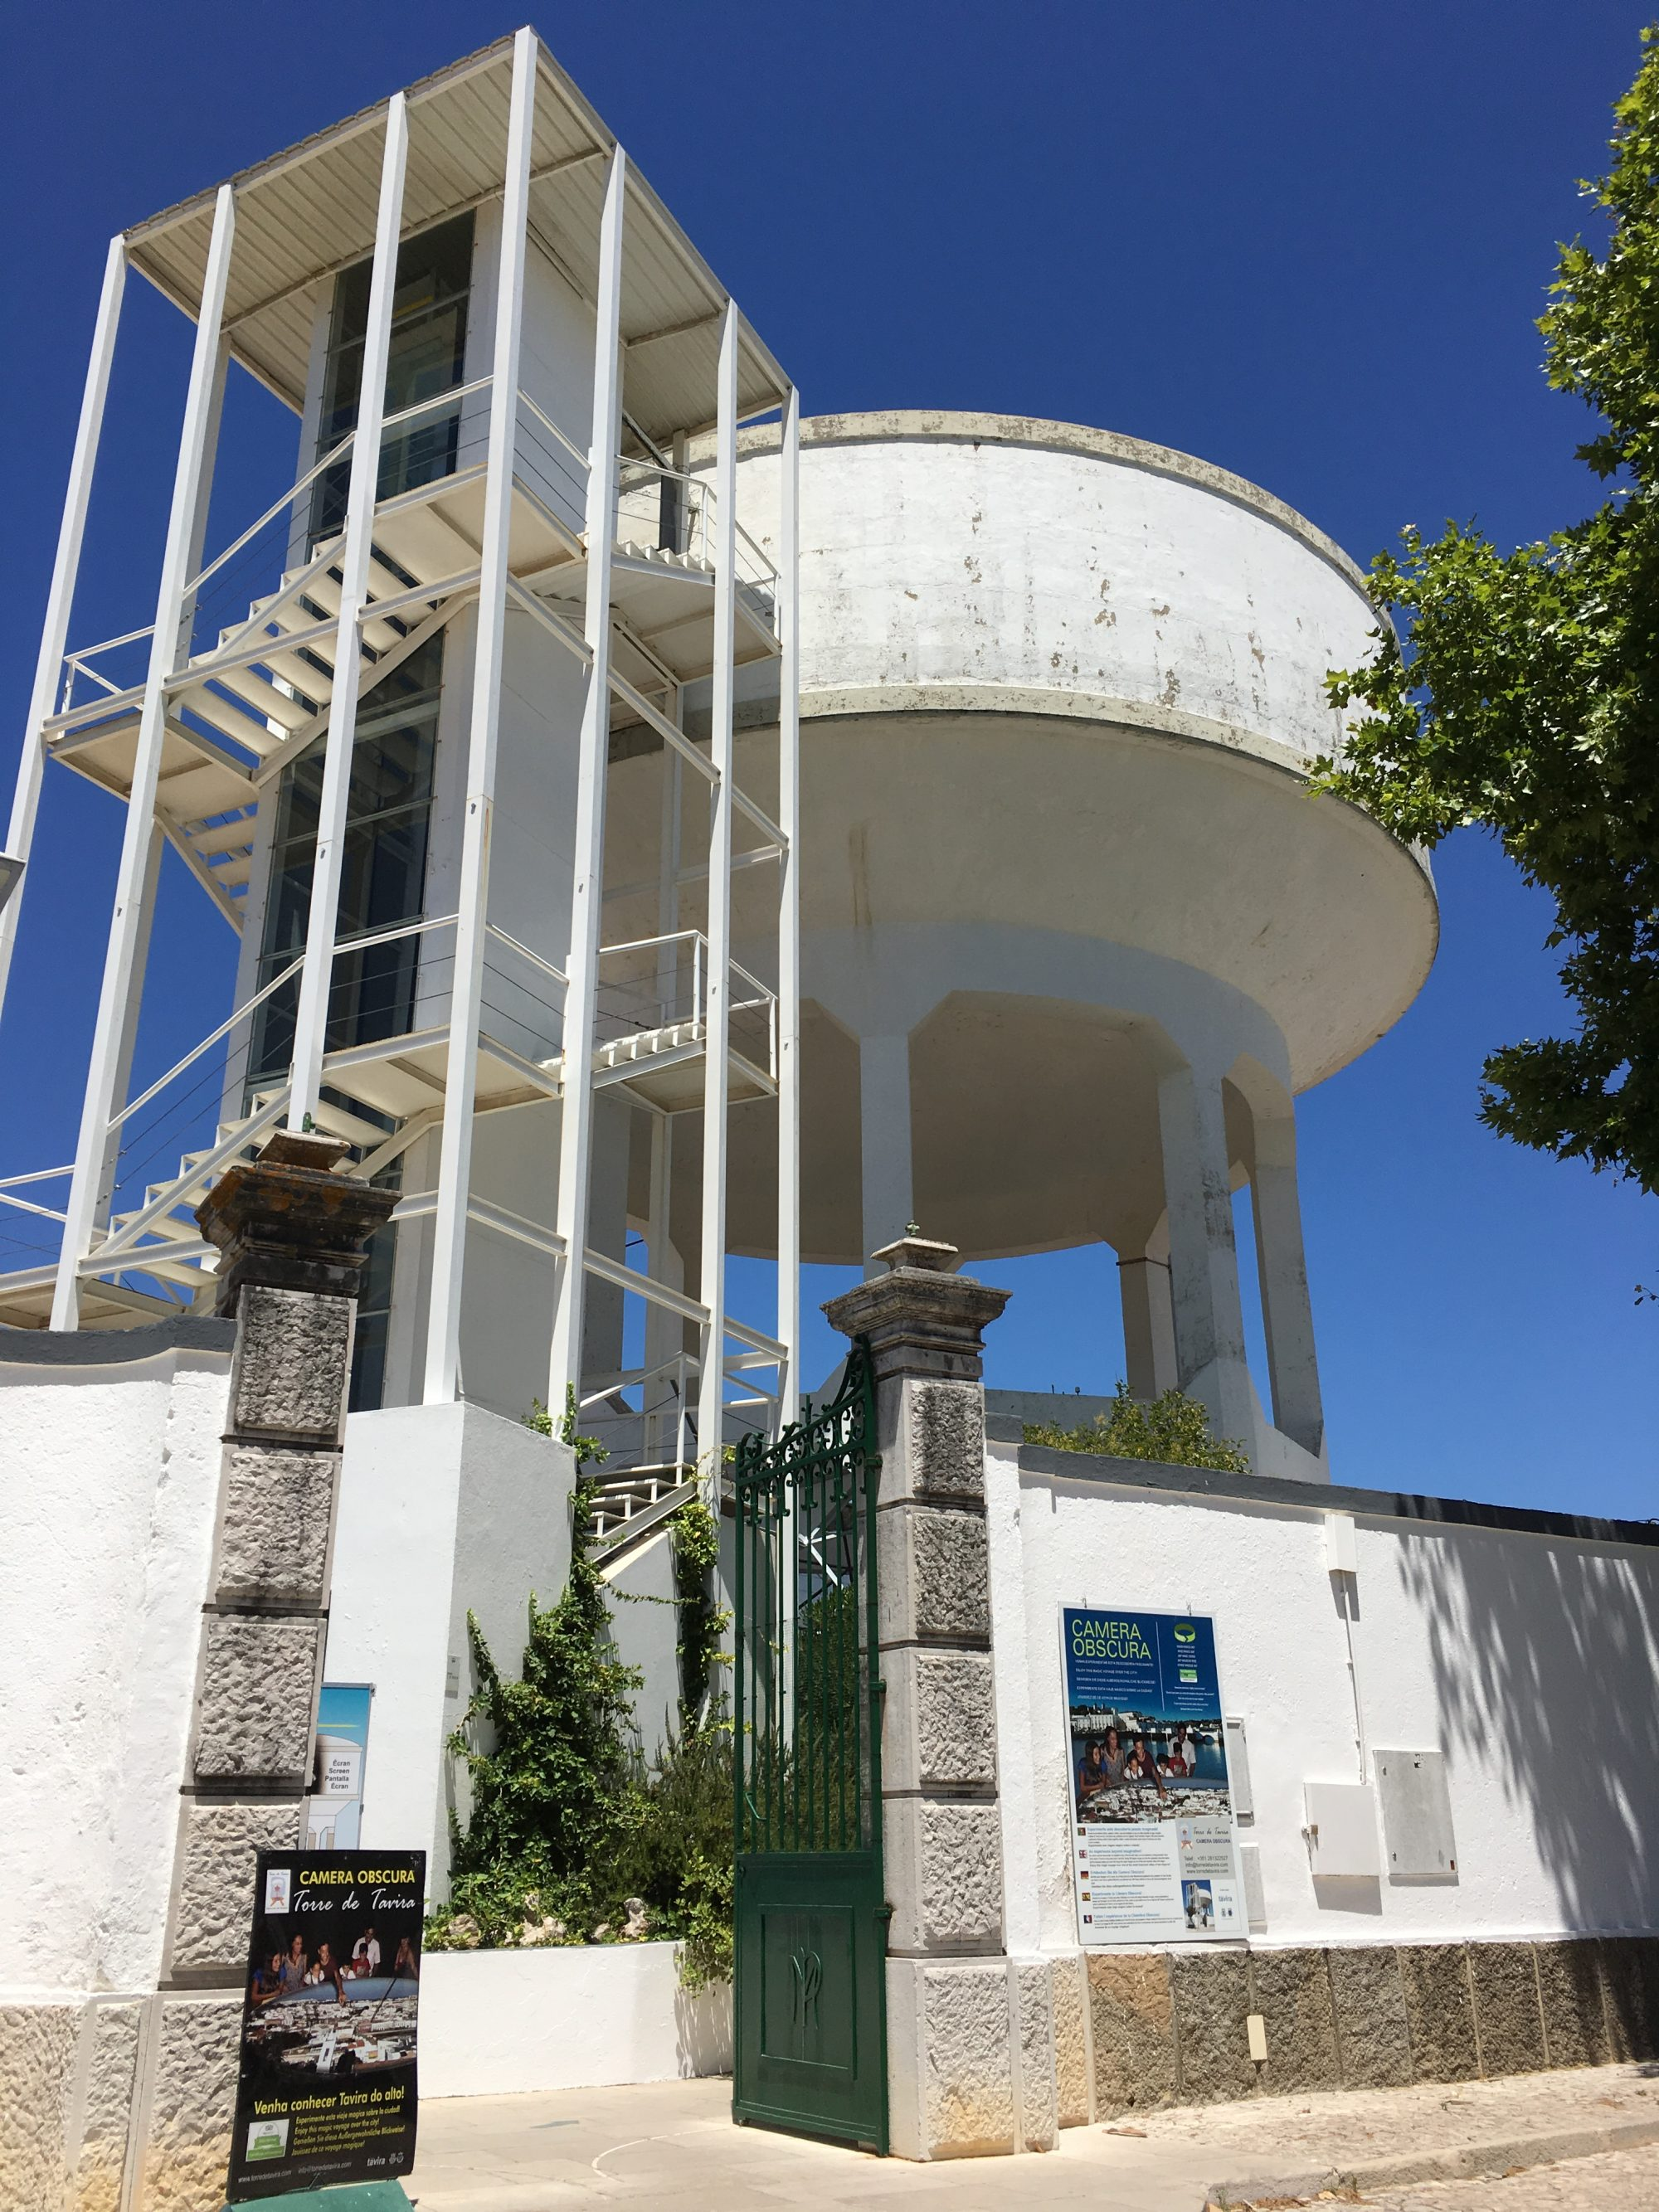 Water tower observation deck Tavira